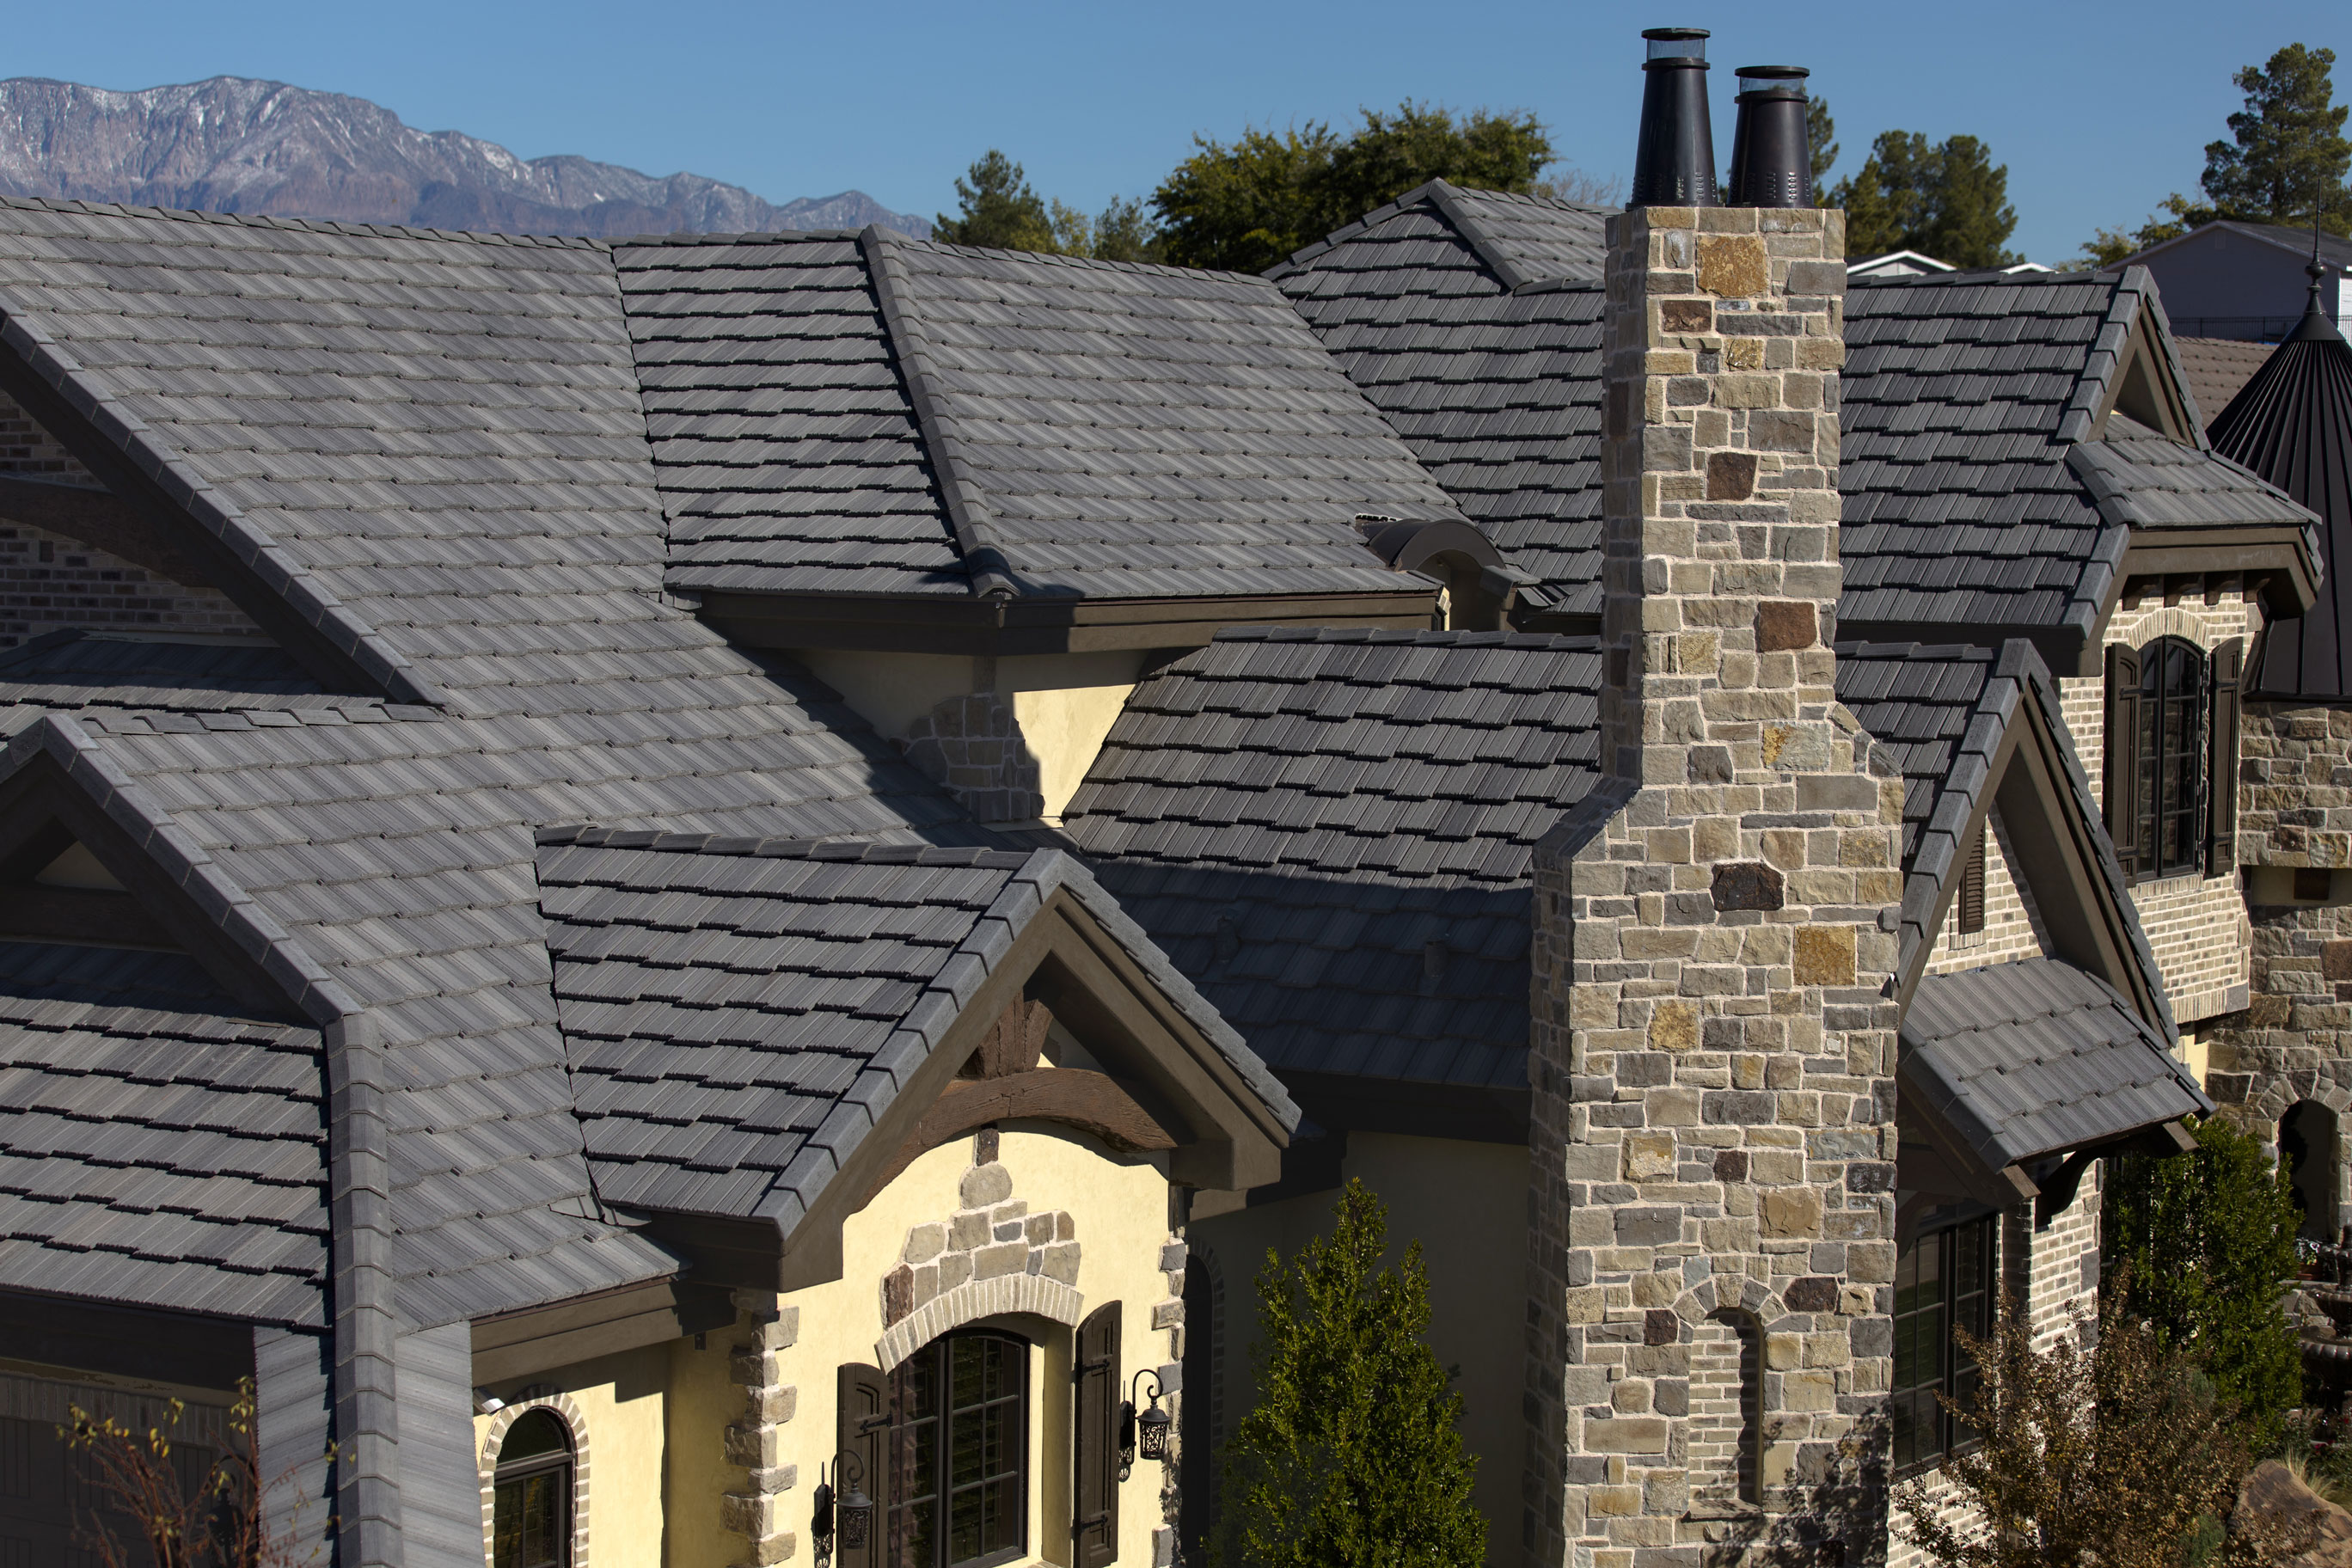 Eagle design corner dark gray concrete tile roofs are trending the demand for dark gray concrete roof tiles such as dark charcoal and dark gray range transcends across all regions of north ppazfo